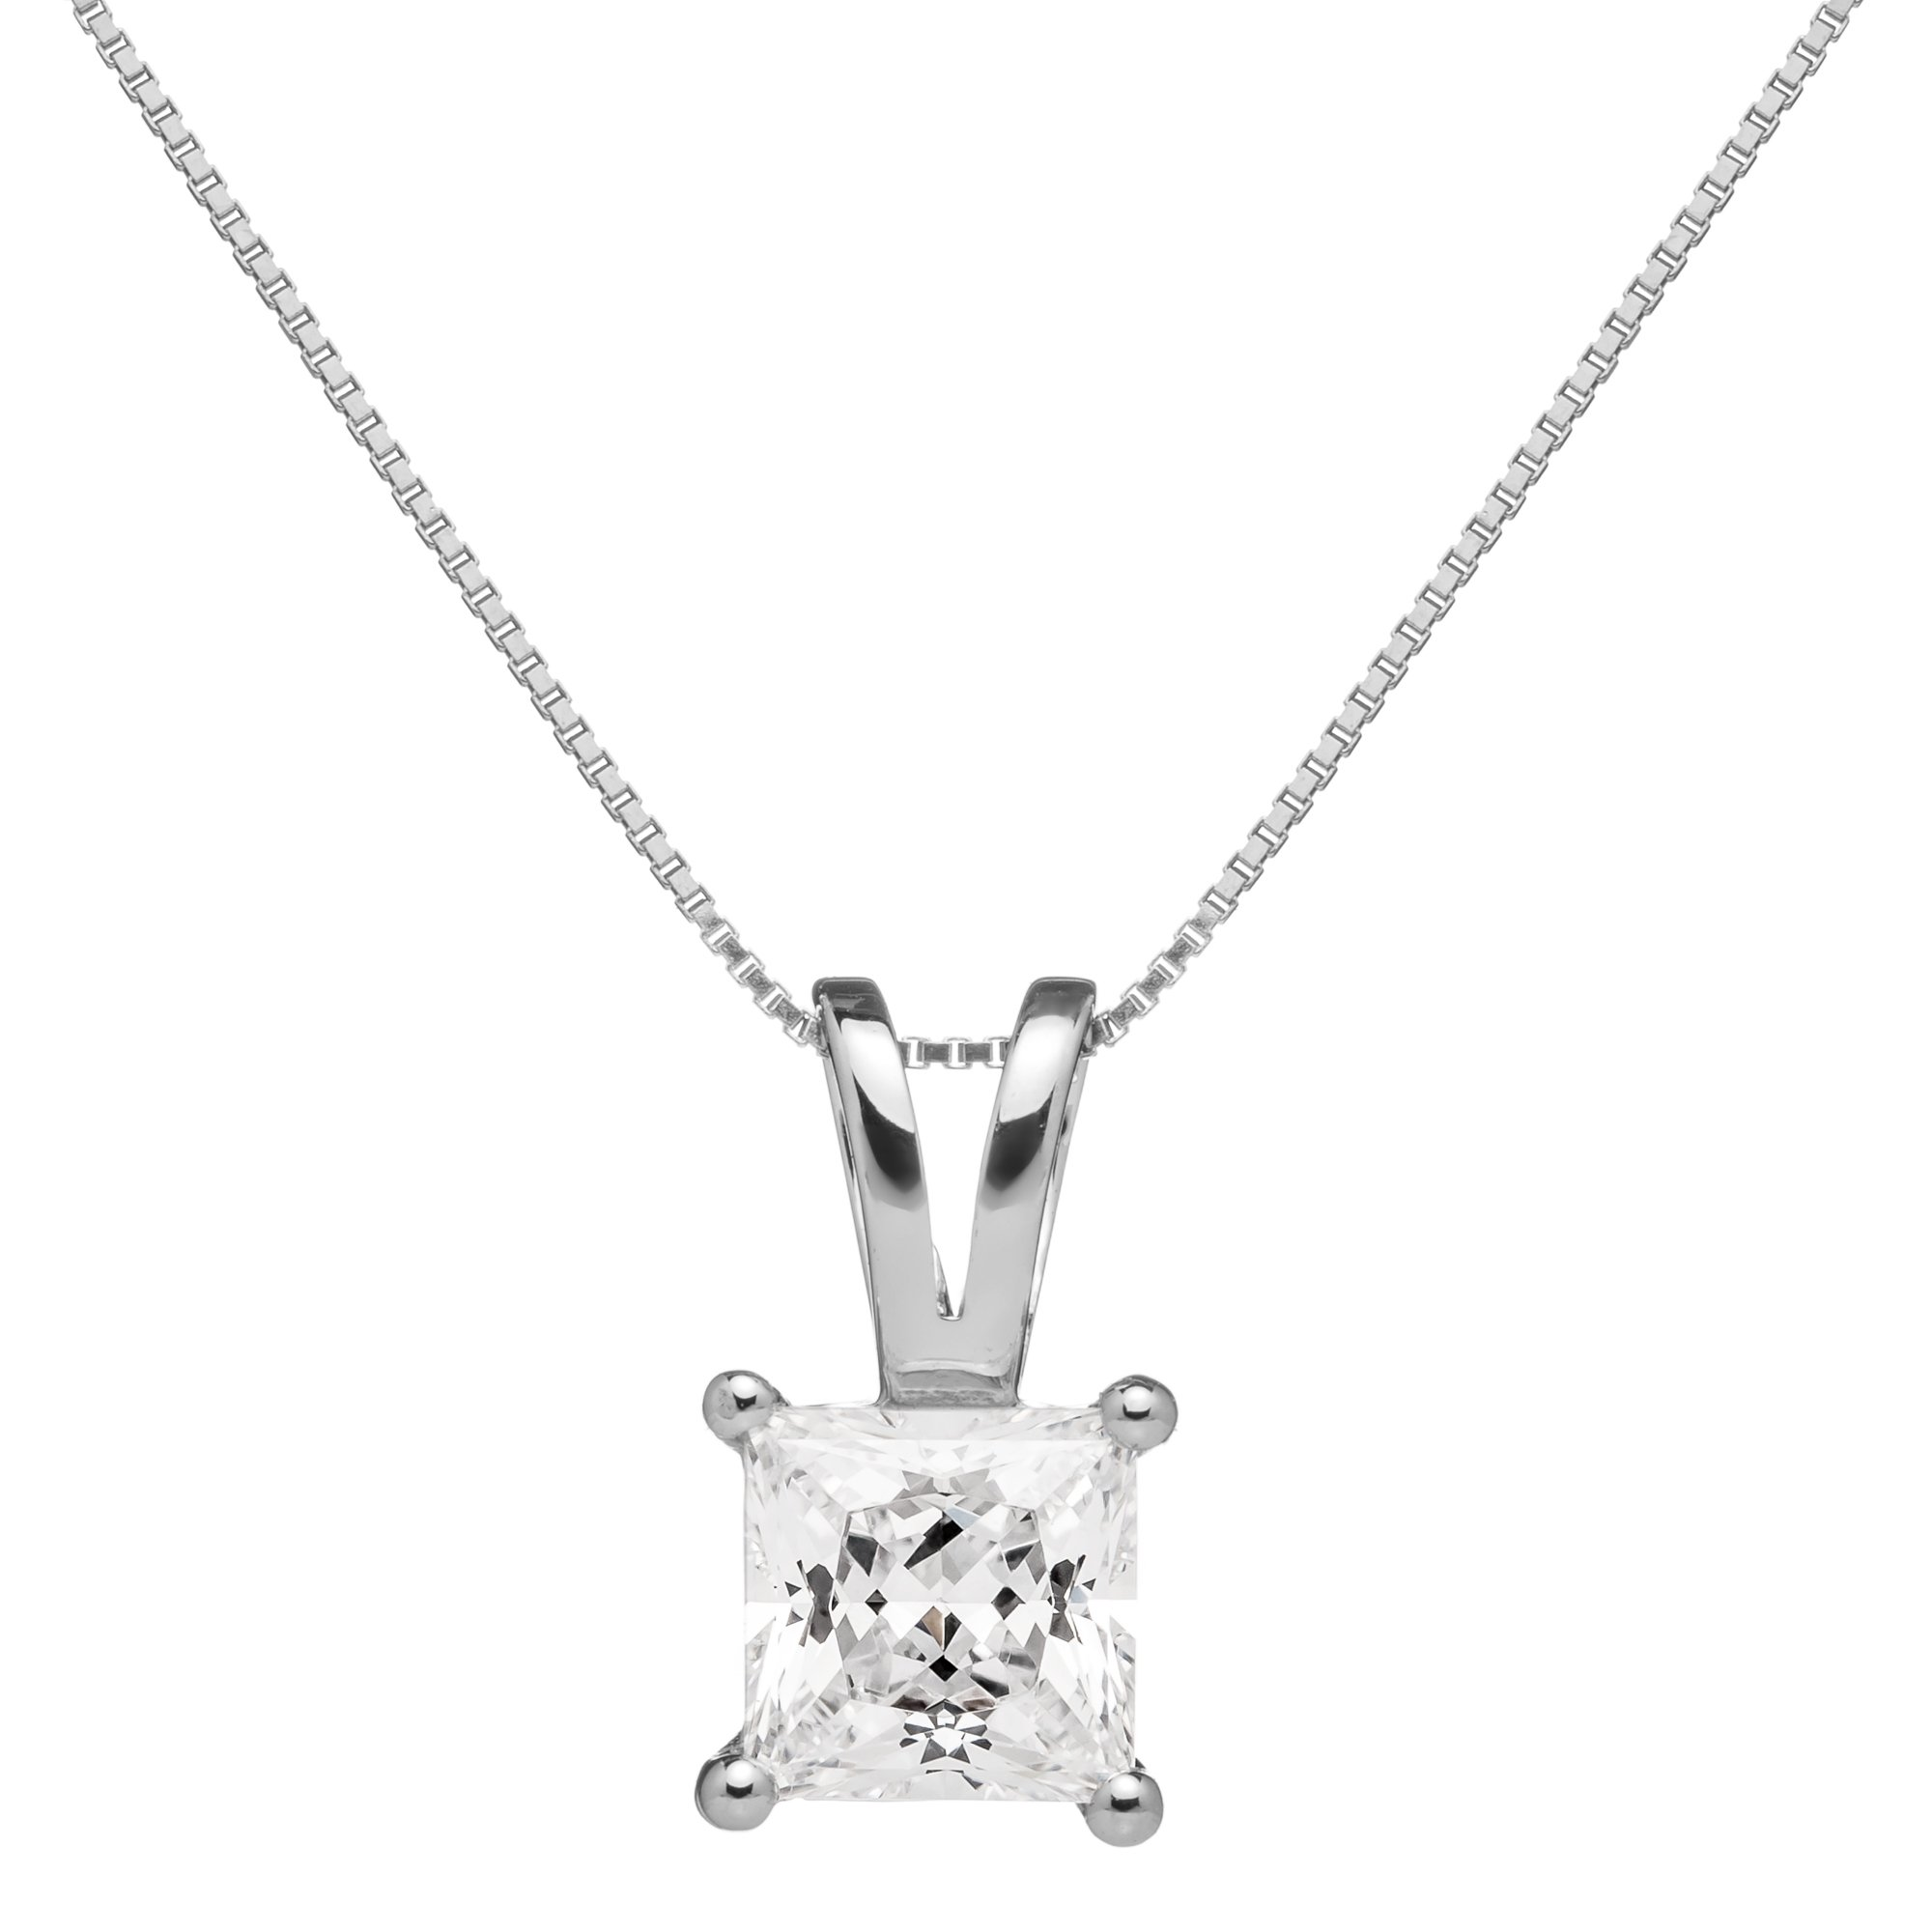 14K Solid White Gold Princess Cut Cubic Zirconia Solitaire Pendant Necklace (1 carat), 16 inch .50mm Box Link Chain, Gift Box